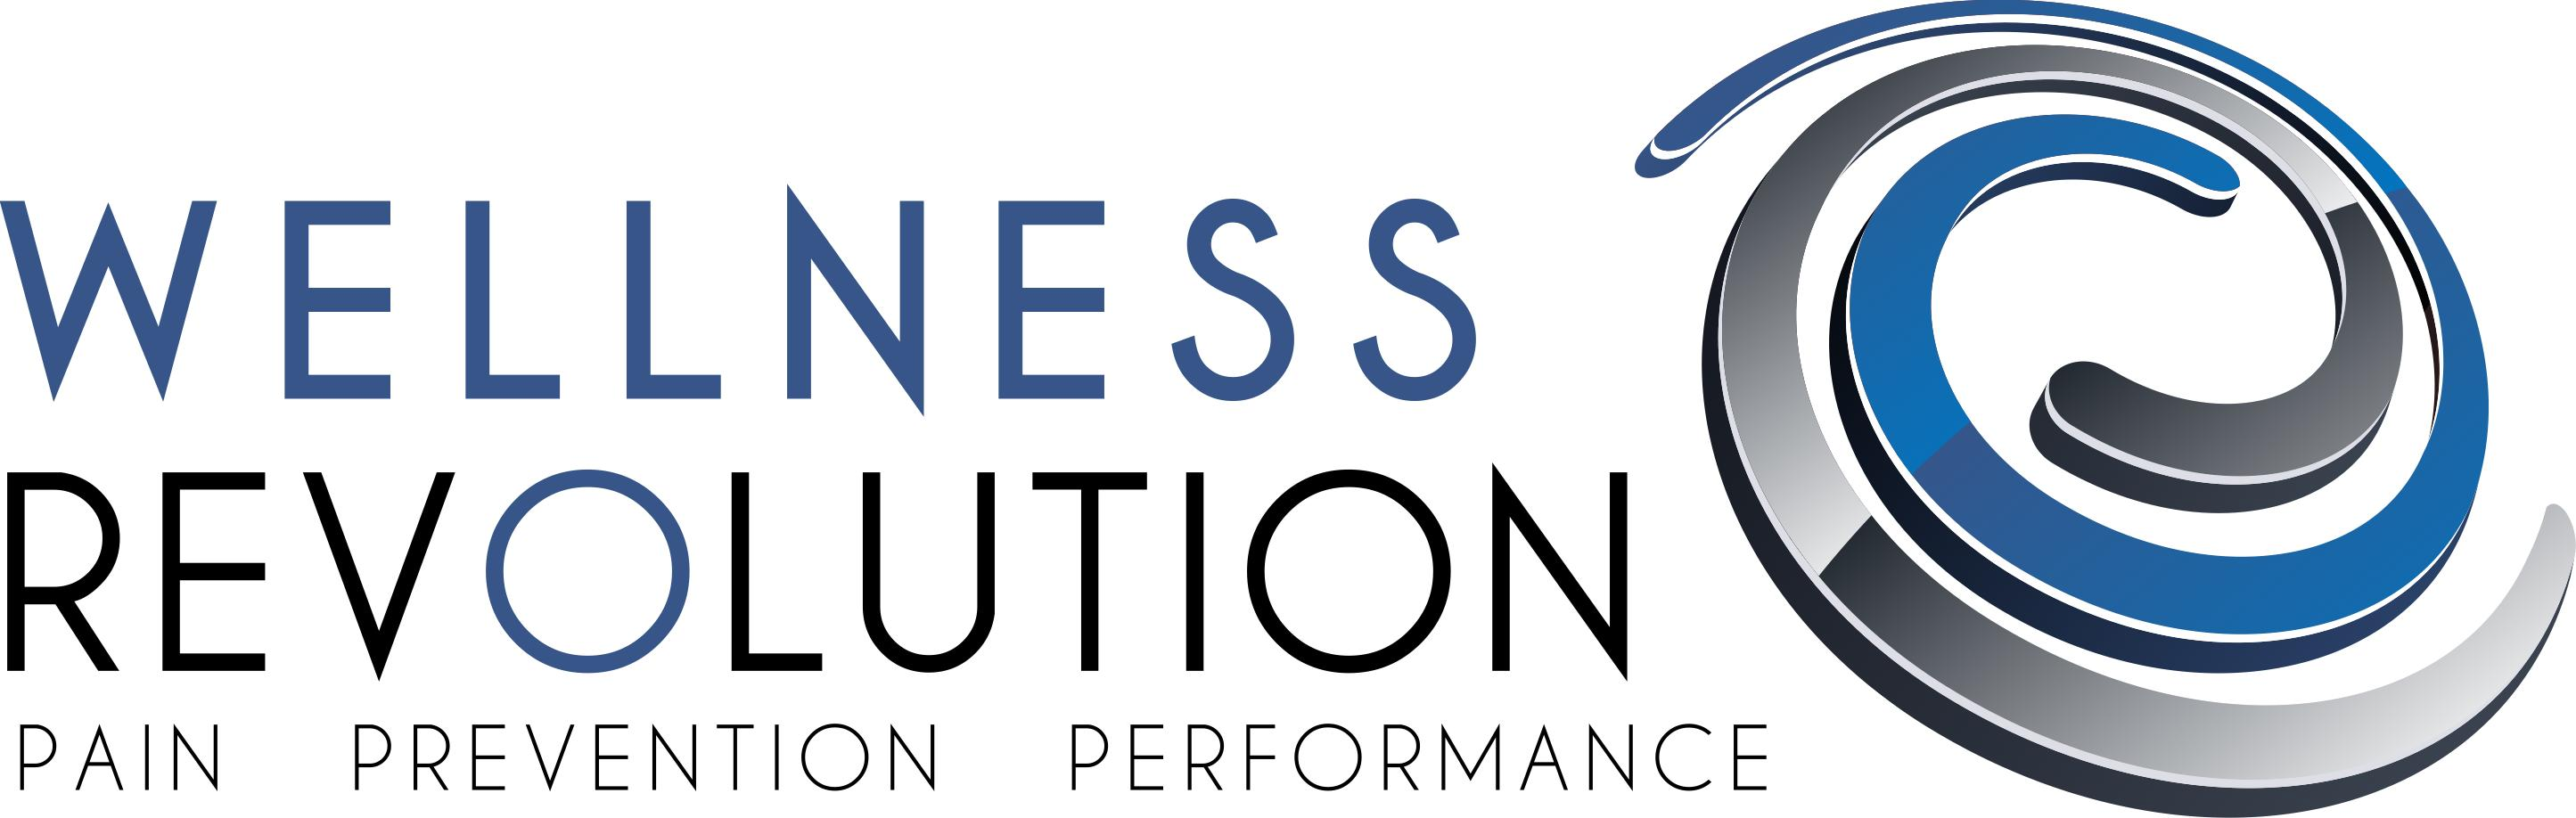 Wellness Revolution logo